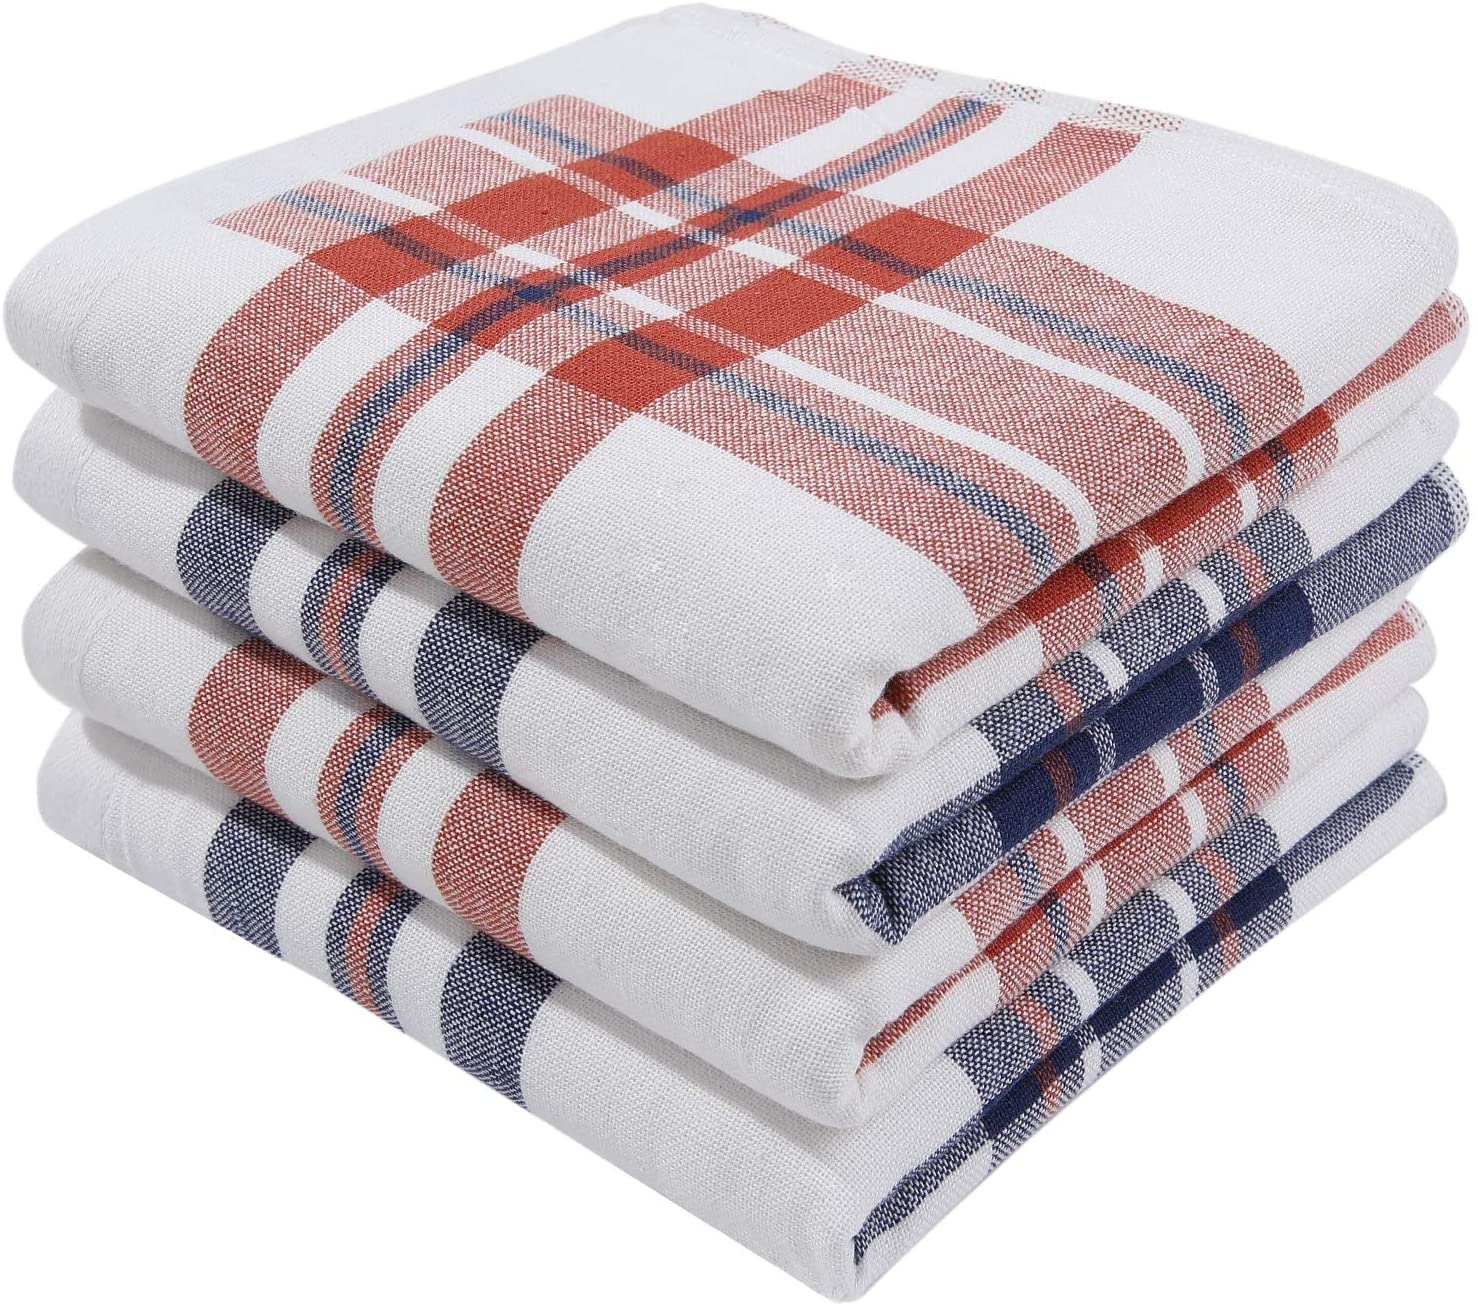 Homaxy 100% Natural Cotton Terry Kitchen Towel, 13 x 28 Inches, Ultra Absorbent Drying Plaid Dish Towels - Great for Household Cooking Cleaning, 4pc/Set, Pink, Blue and Red